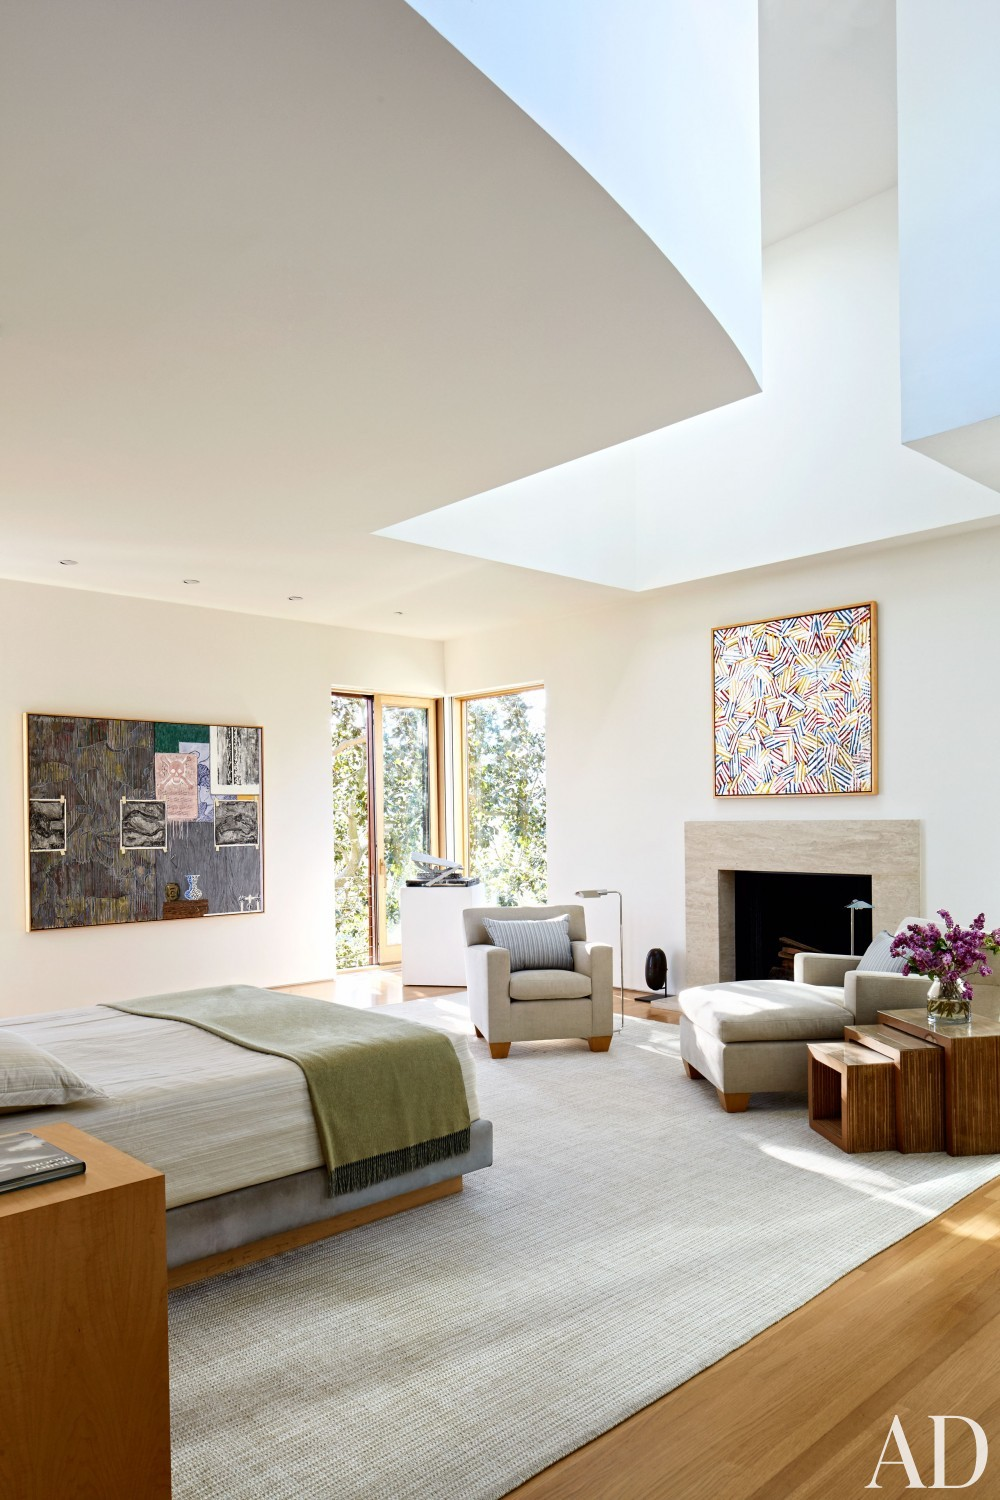 Modern Bedroom by Rose Tarlow and Langdon Wilson in Brentwood, CA